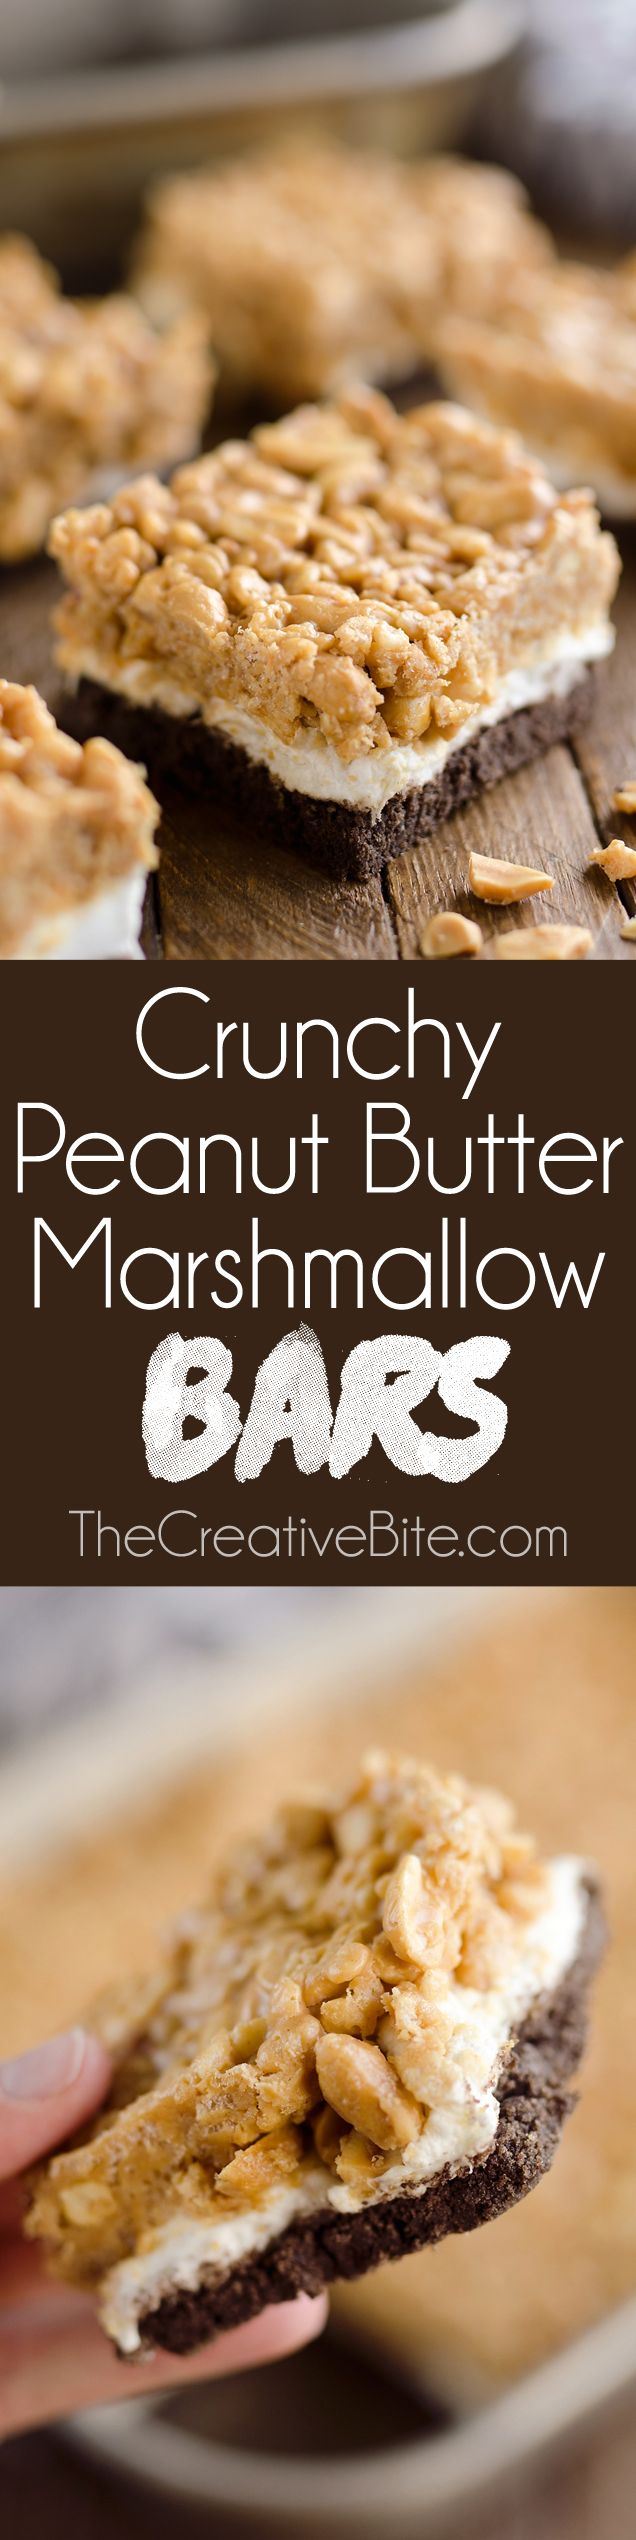 Crunchy Peanut Butter Marshmallow Bars are an easy 30 minute sweet and salty dessert everyone will love! A chocolate crust is topped with marshmallows and a crunchy peanut butter and rice crispie mixturefor a delicious treat.#BeyondTheJar #Ad #PeanutButter